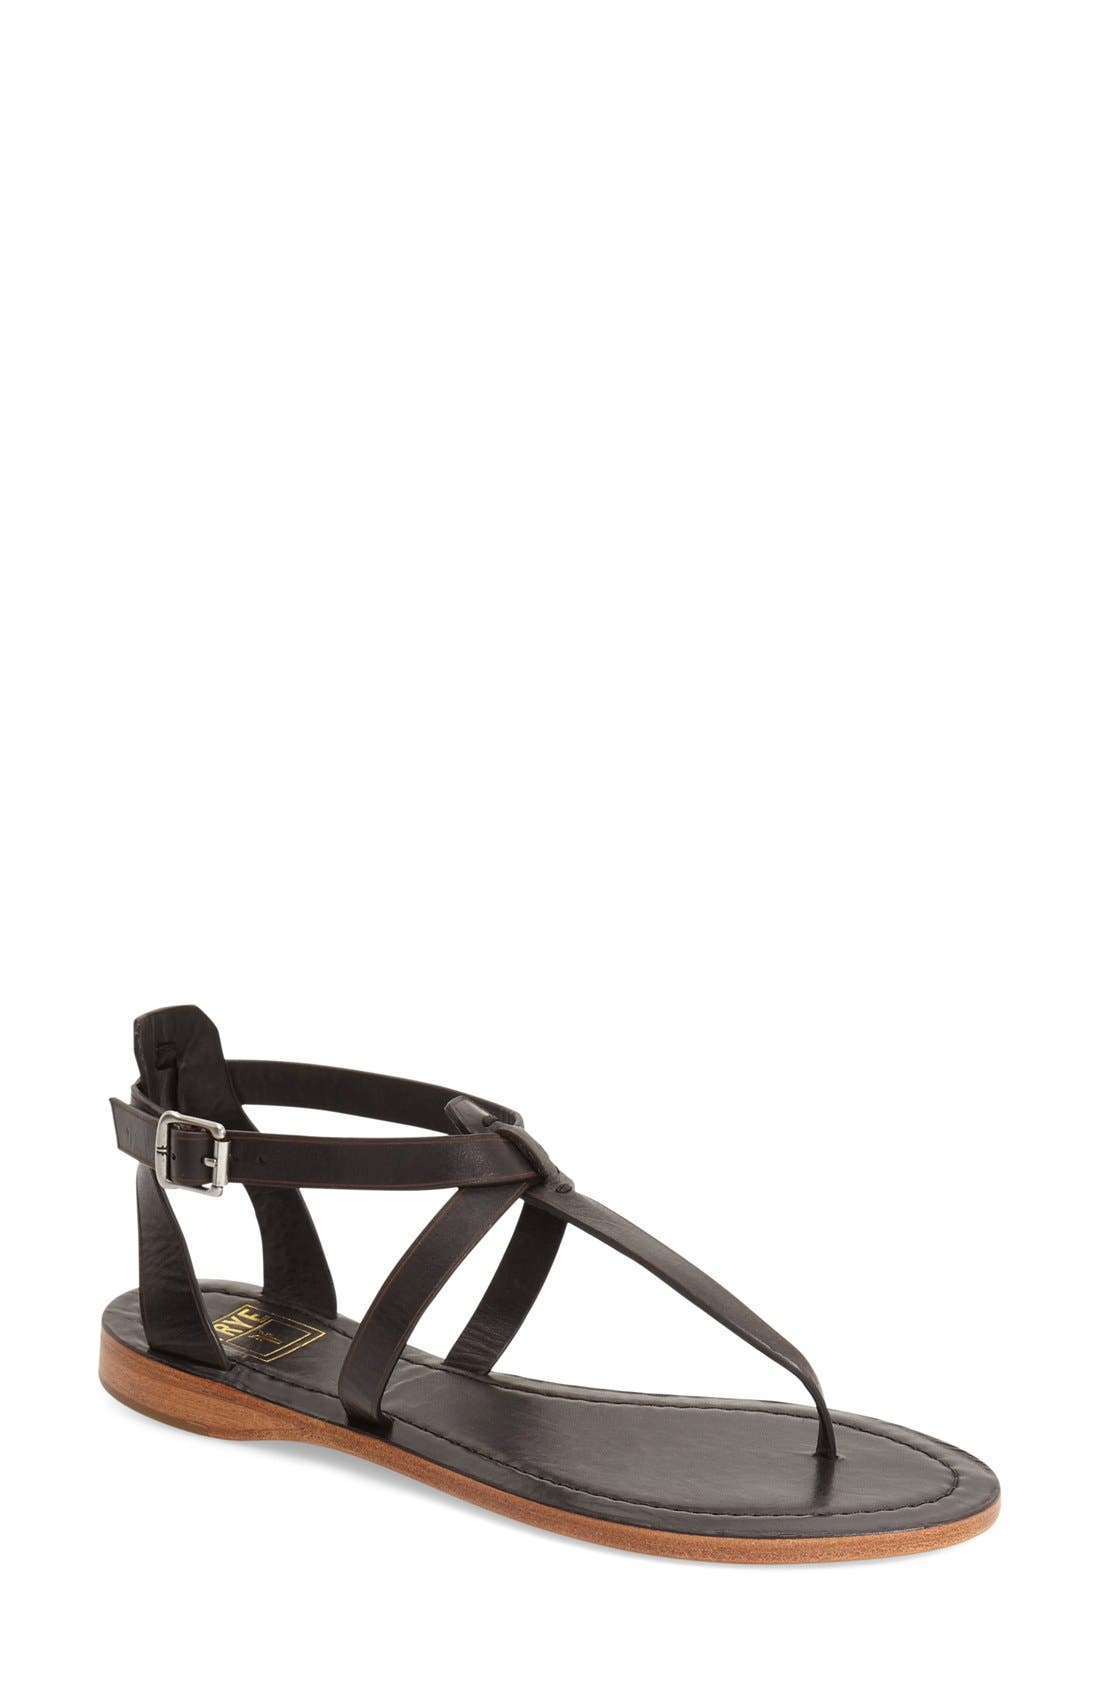 Alternate Image 1 Selected - Frye 'Rachel' T-Strap Sandal (Women)